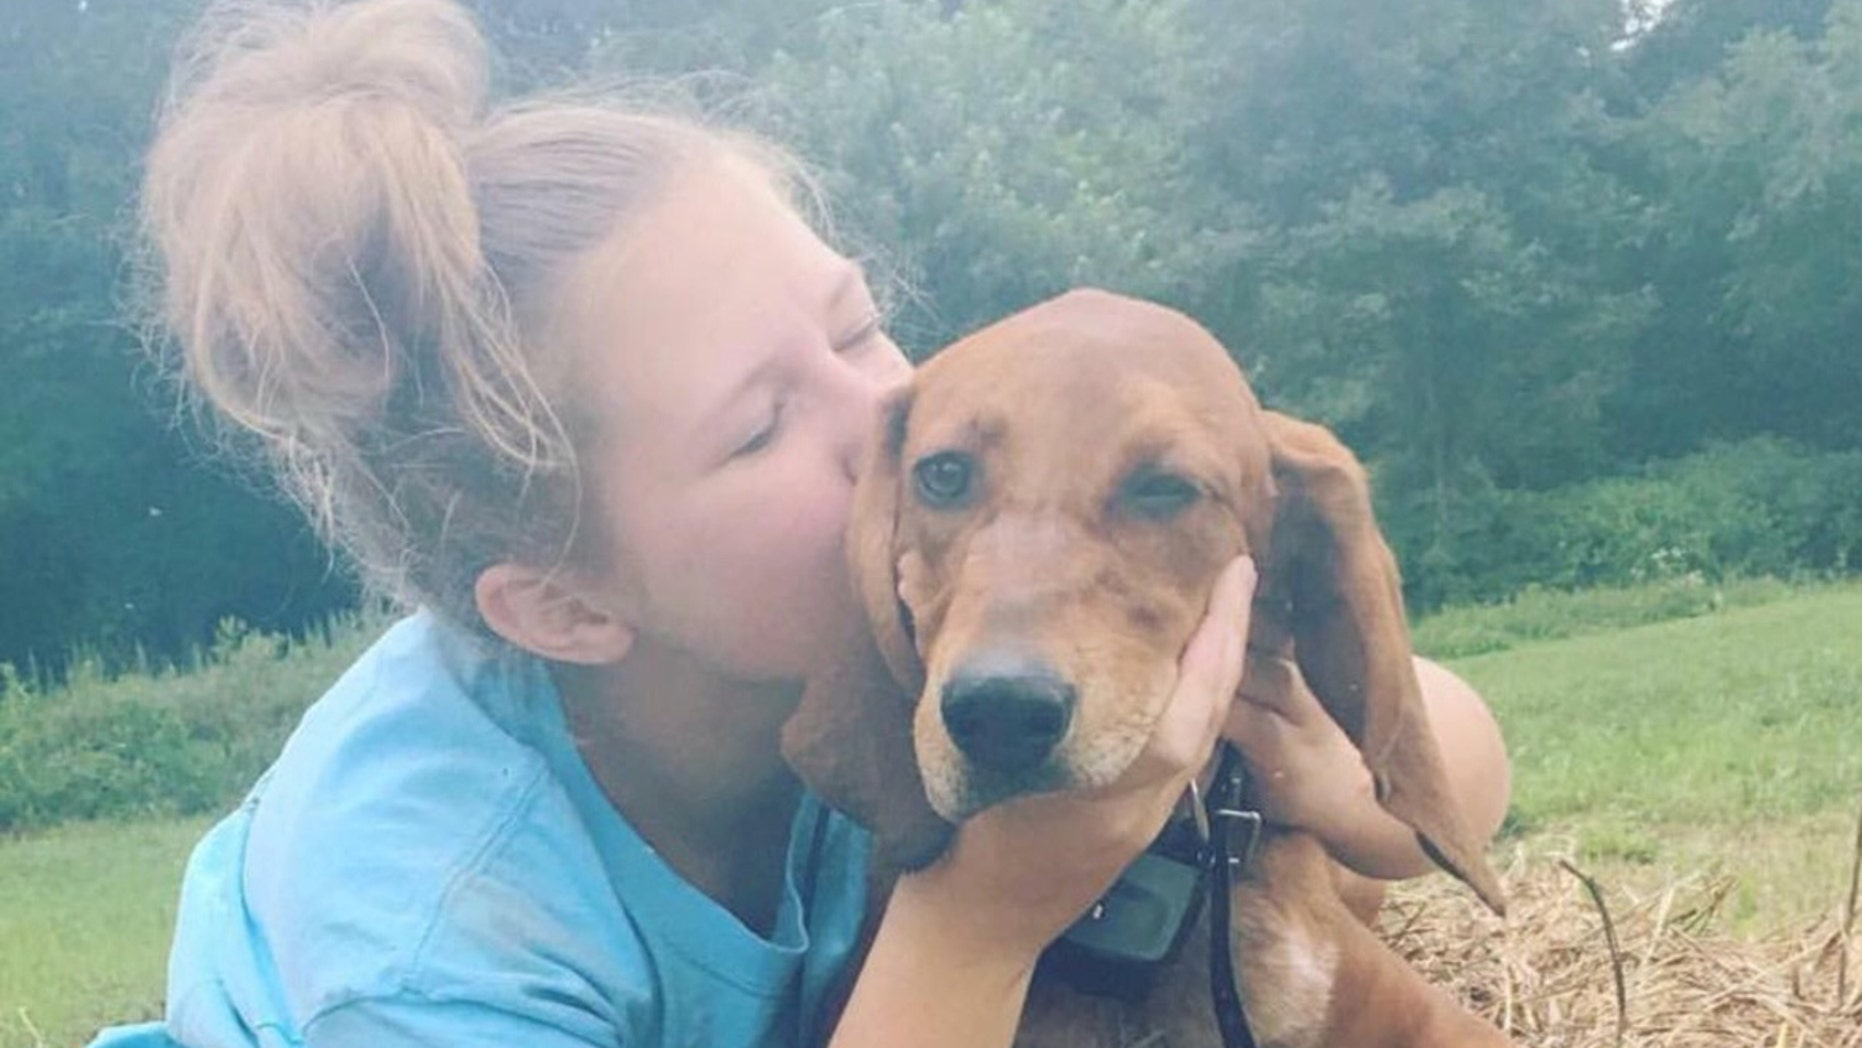 Jennarae Goodbar was killed when she was struck by a car while chasing after her dog Cash, who also died, reports said.